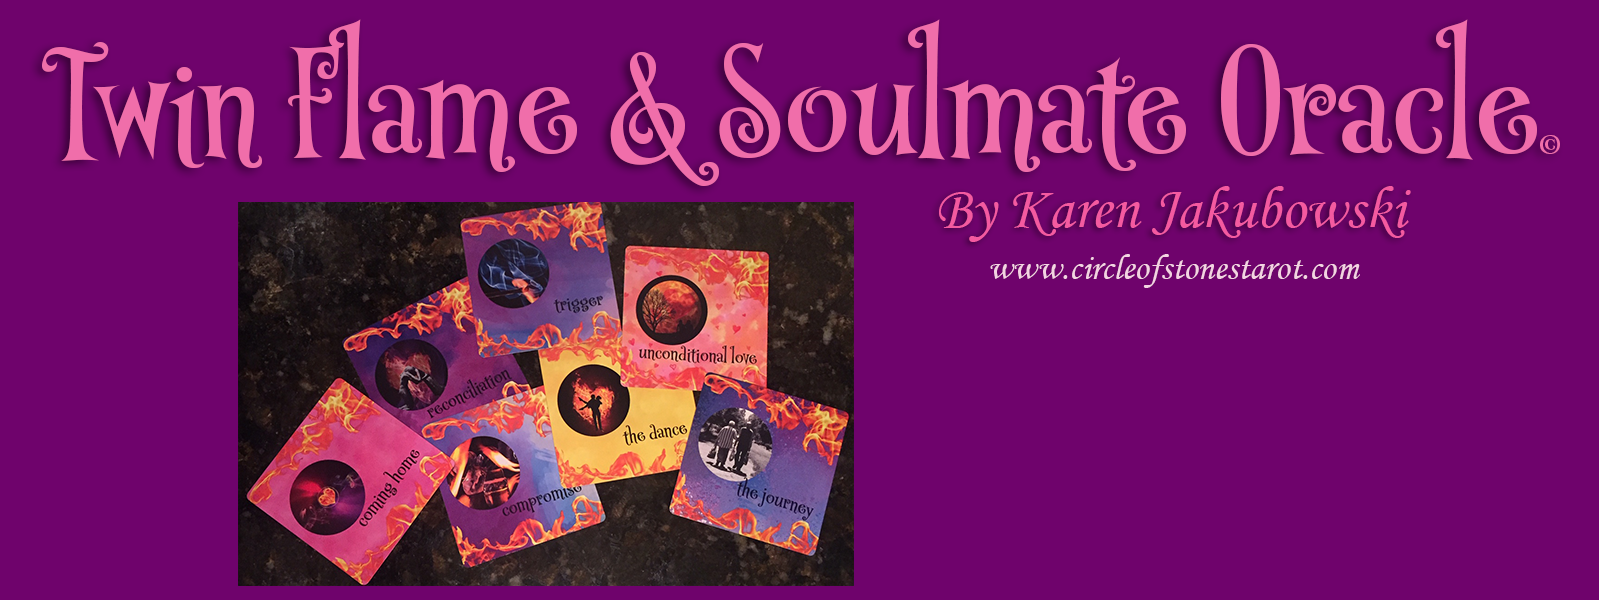 Twin Flame & Soulmate Oracle